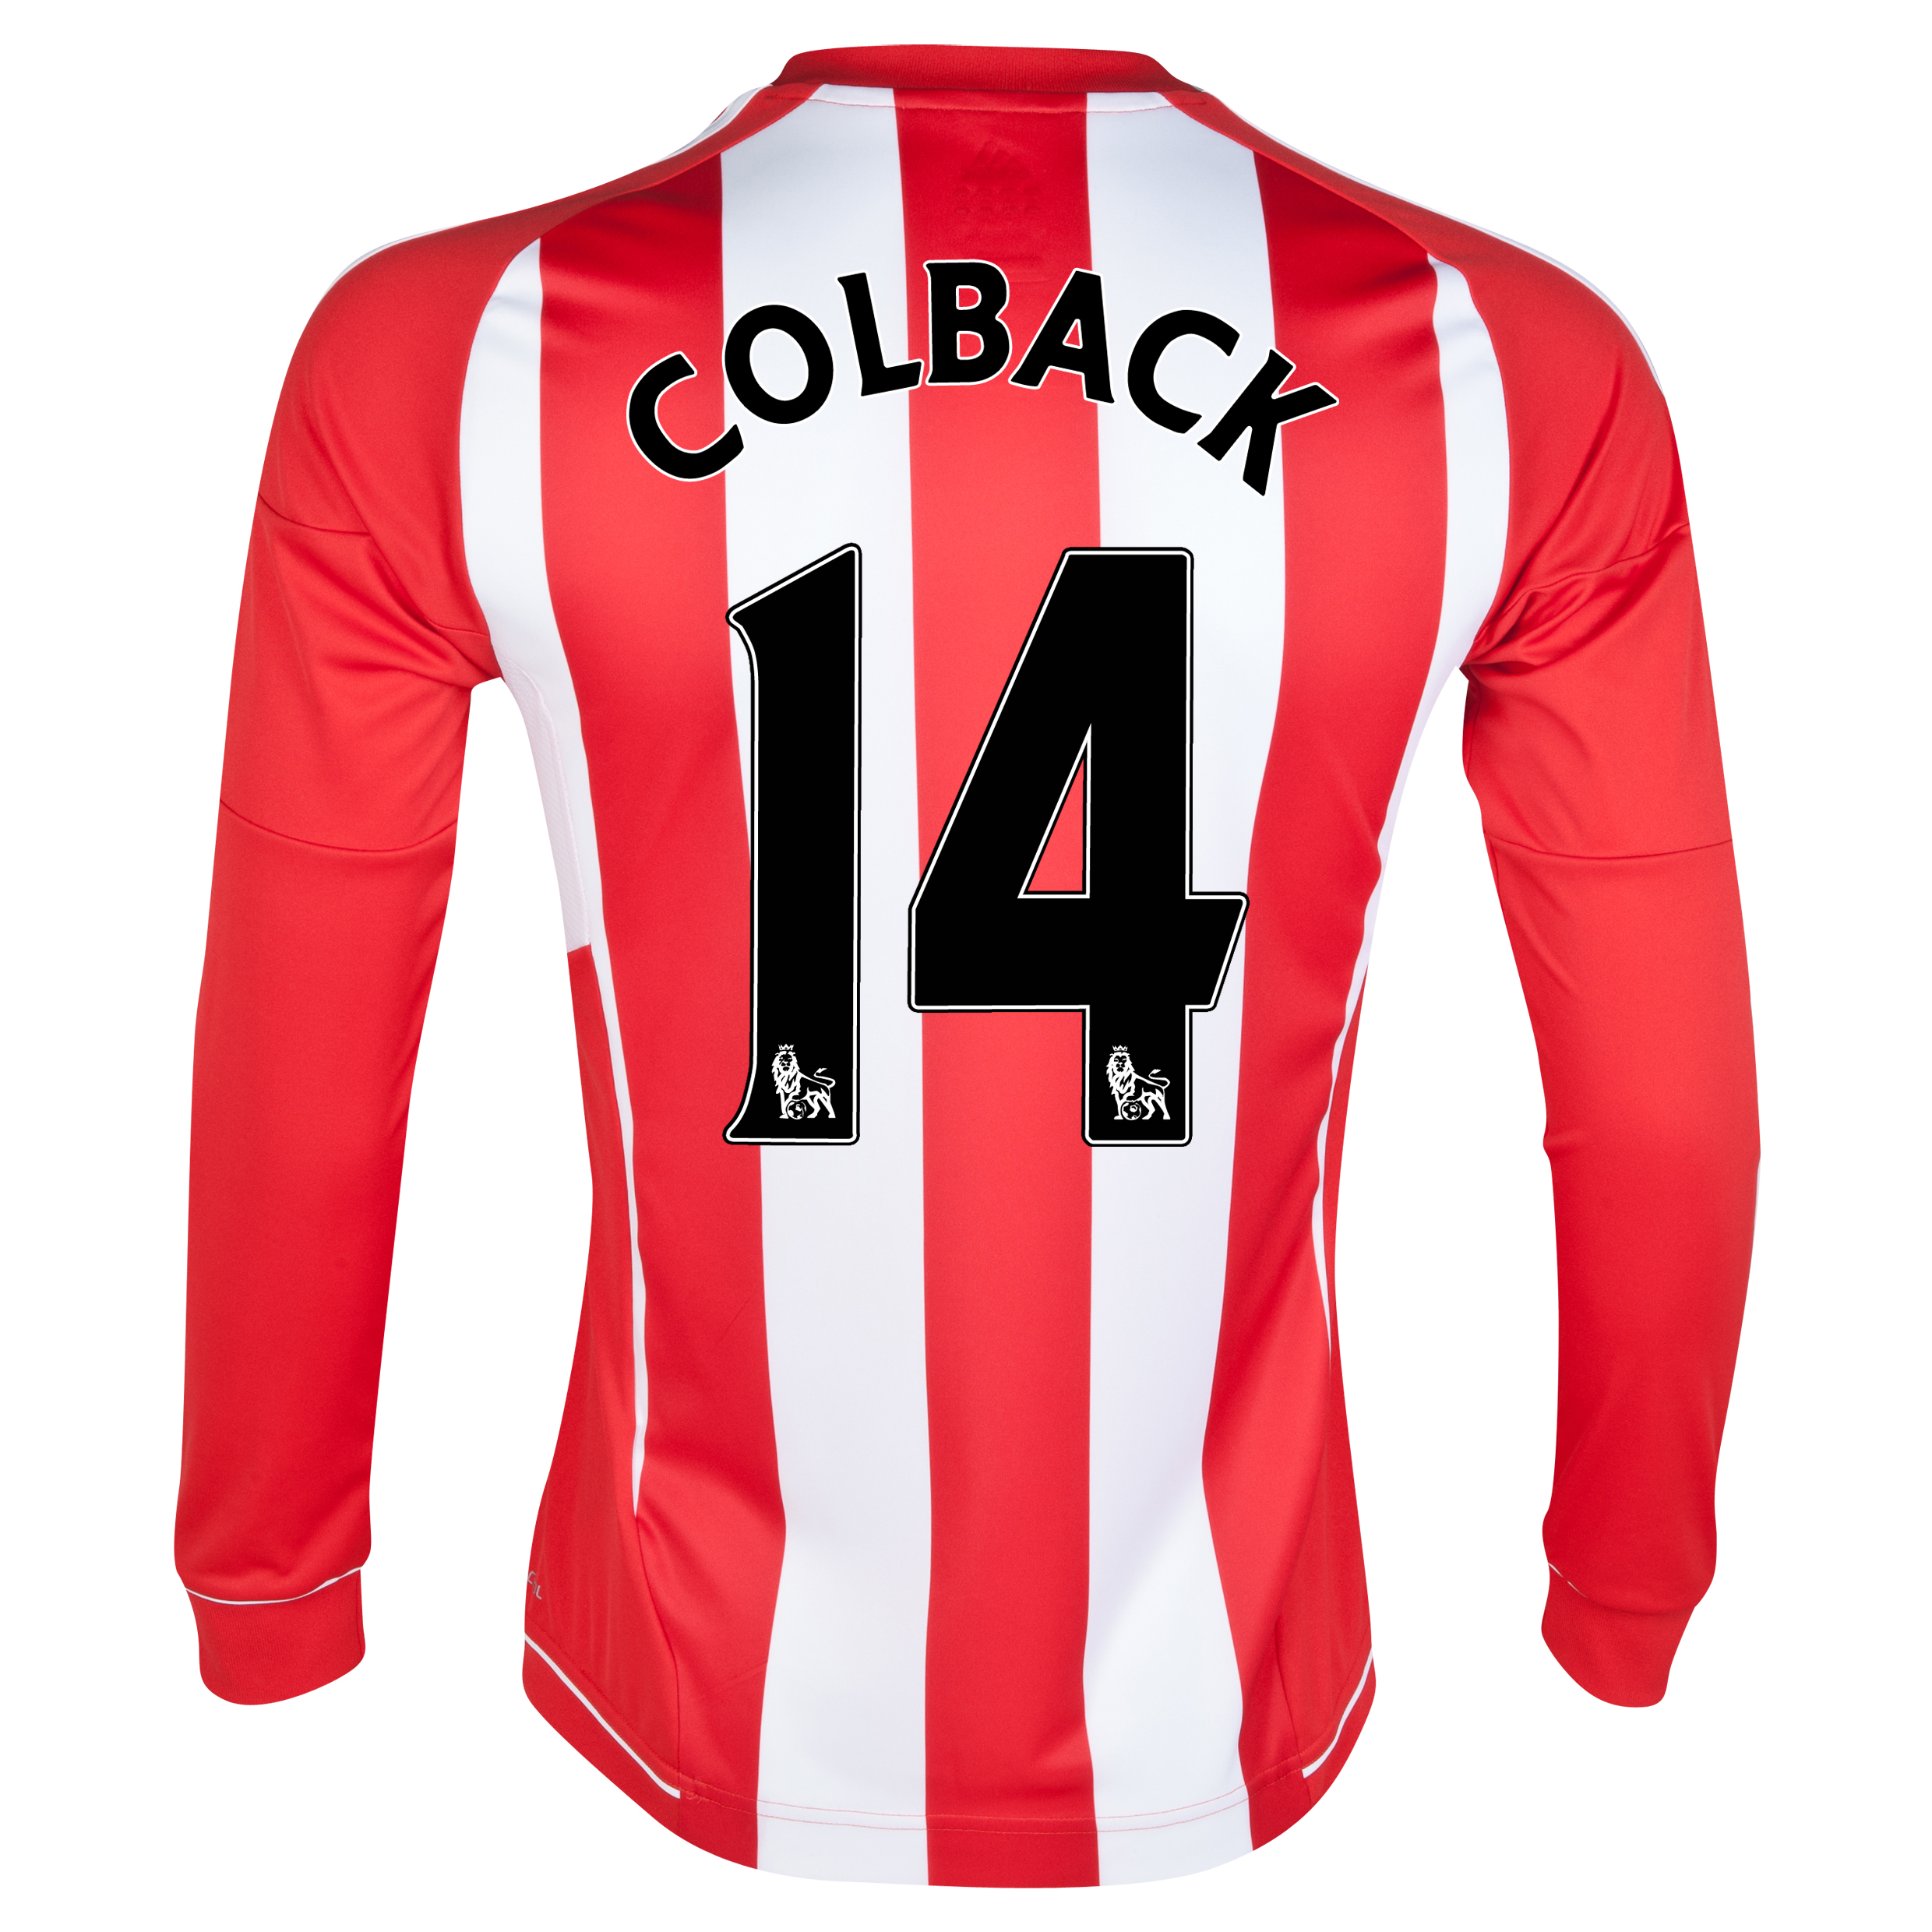 Sunderland Home Shirt 2012/13 - Long Sleeved - Junior with Colback 14 printing